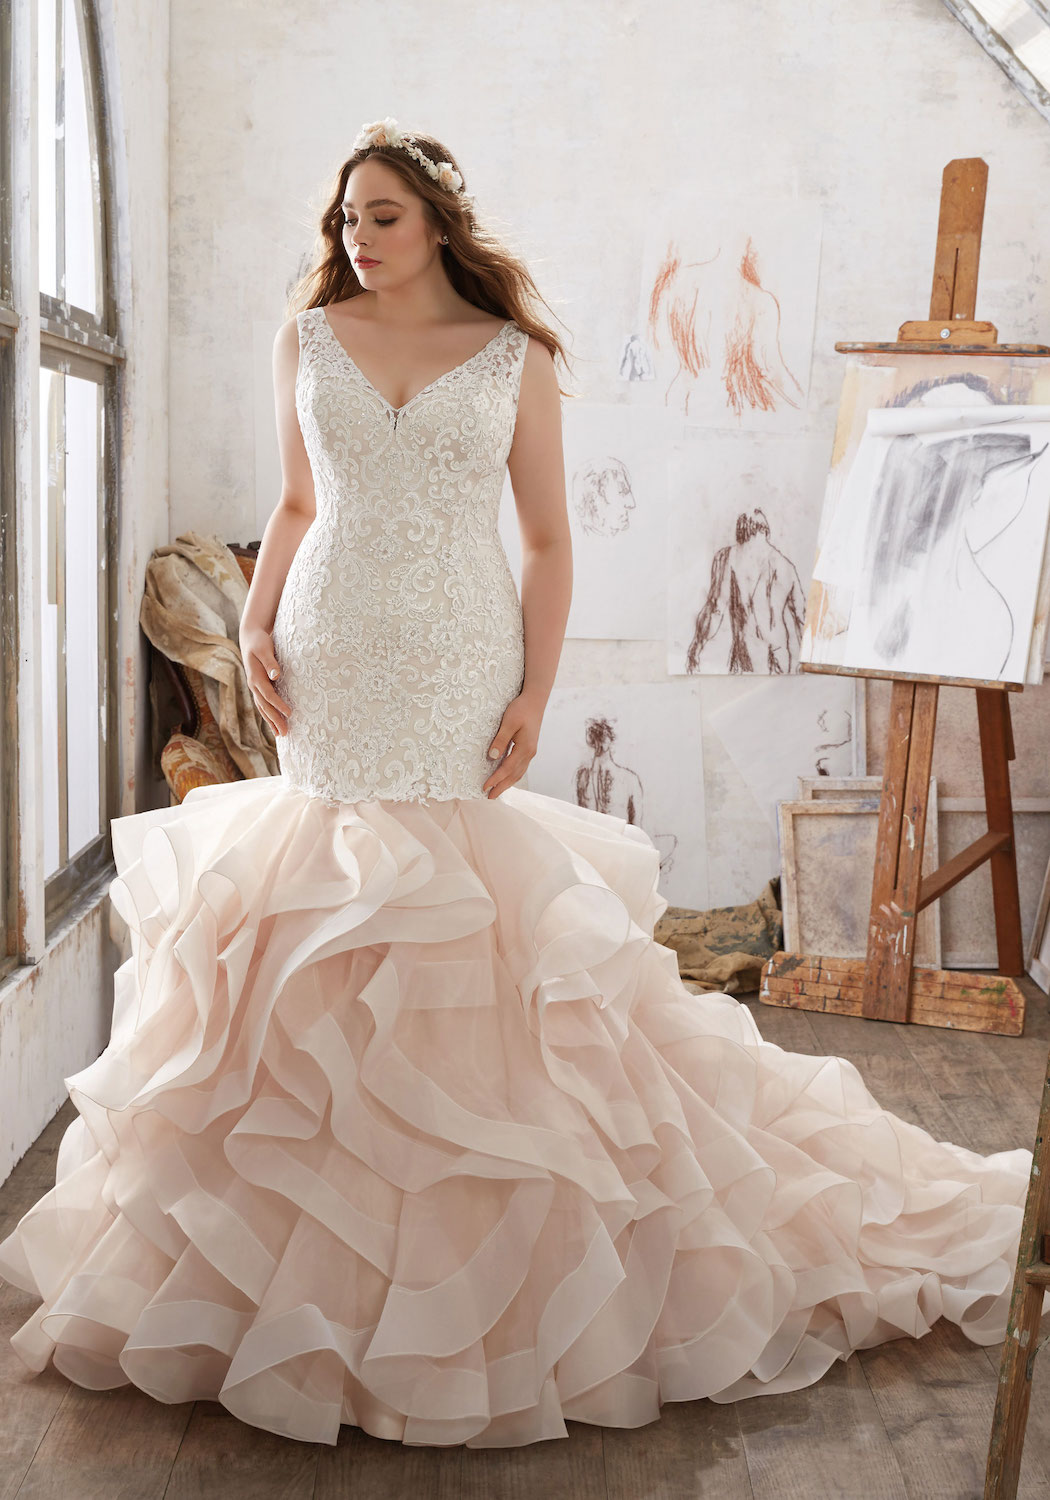 11 Designer Wedding Dresses In Extended Sizes That We Re